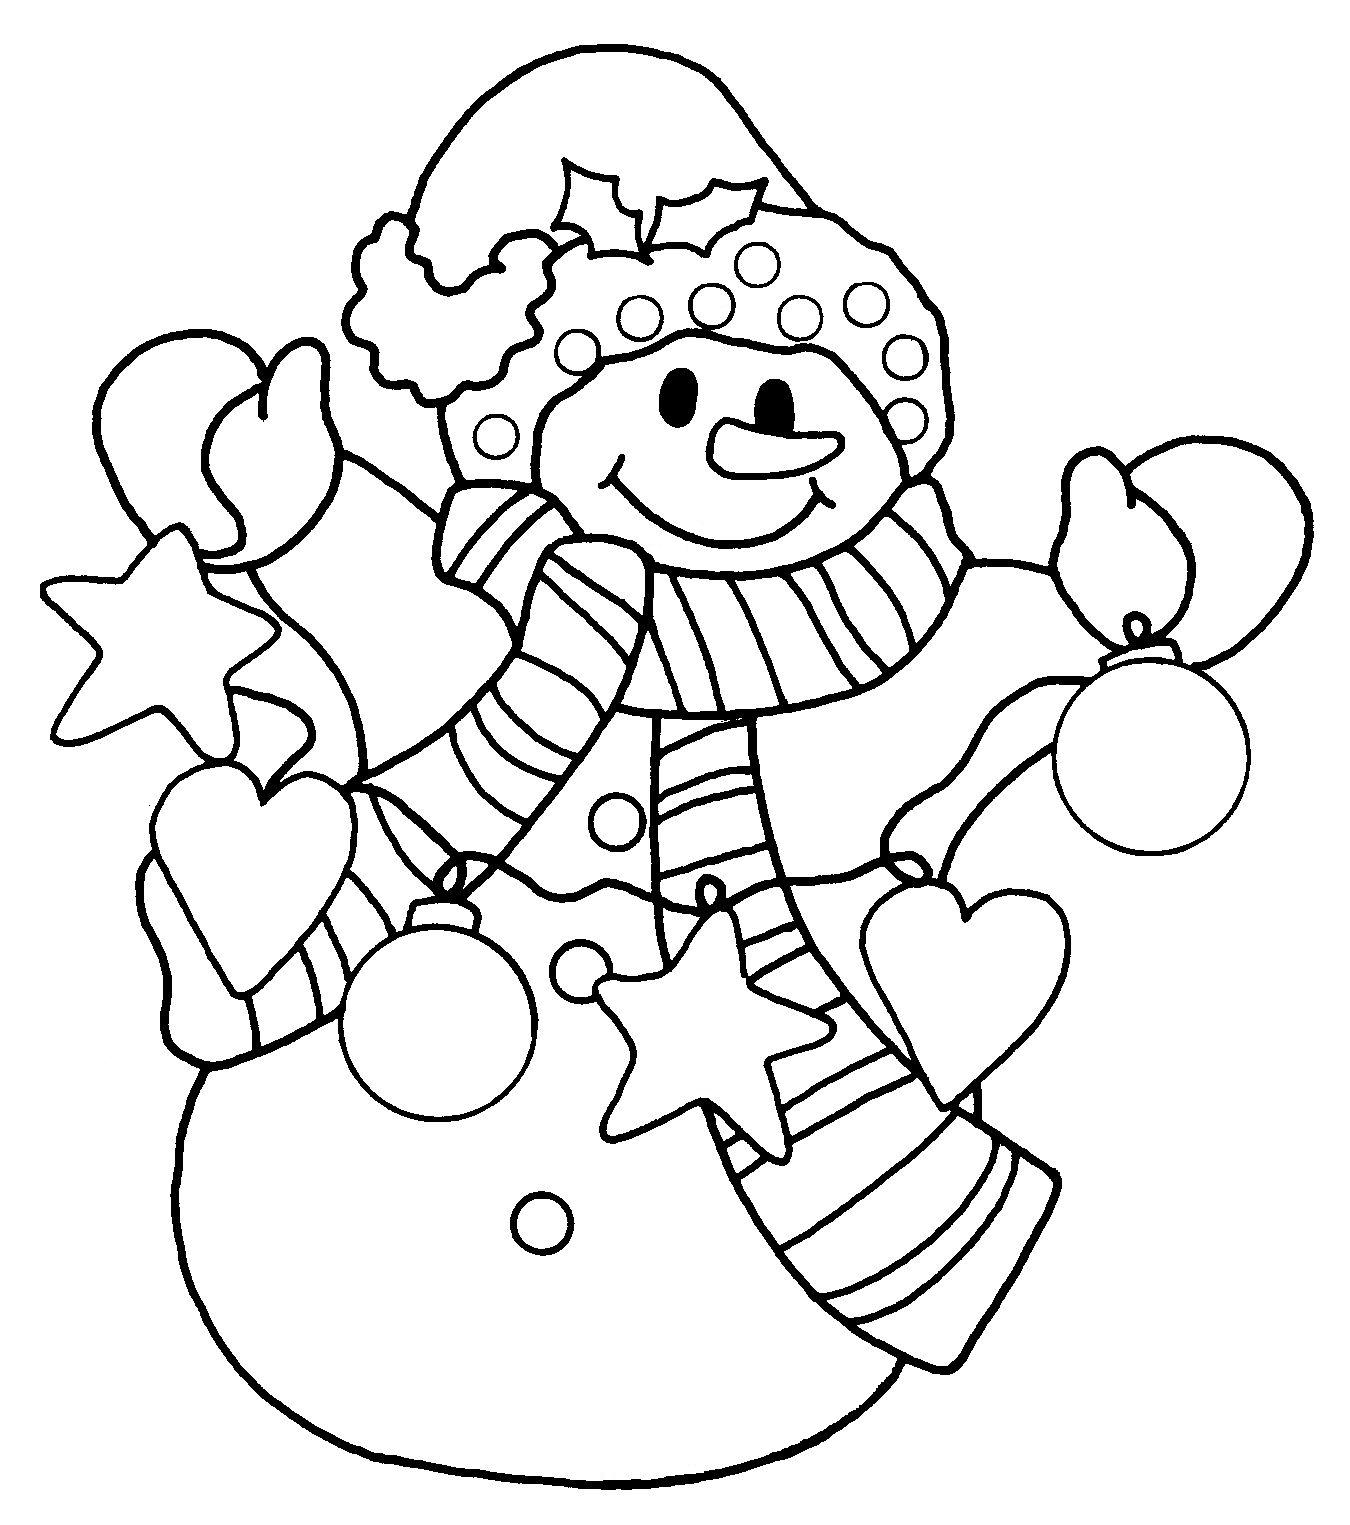 free snowman coloring pages - dz doodles digital stamps oodles of doodles news freebie